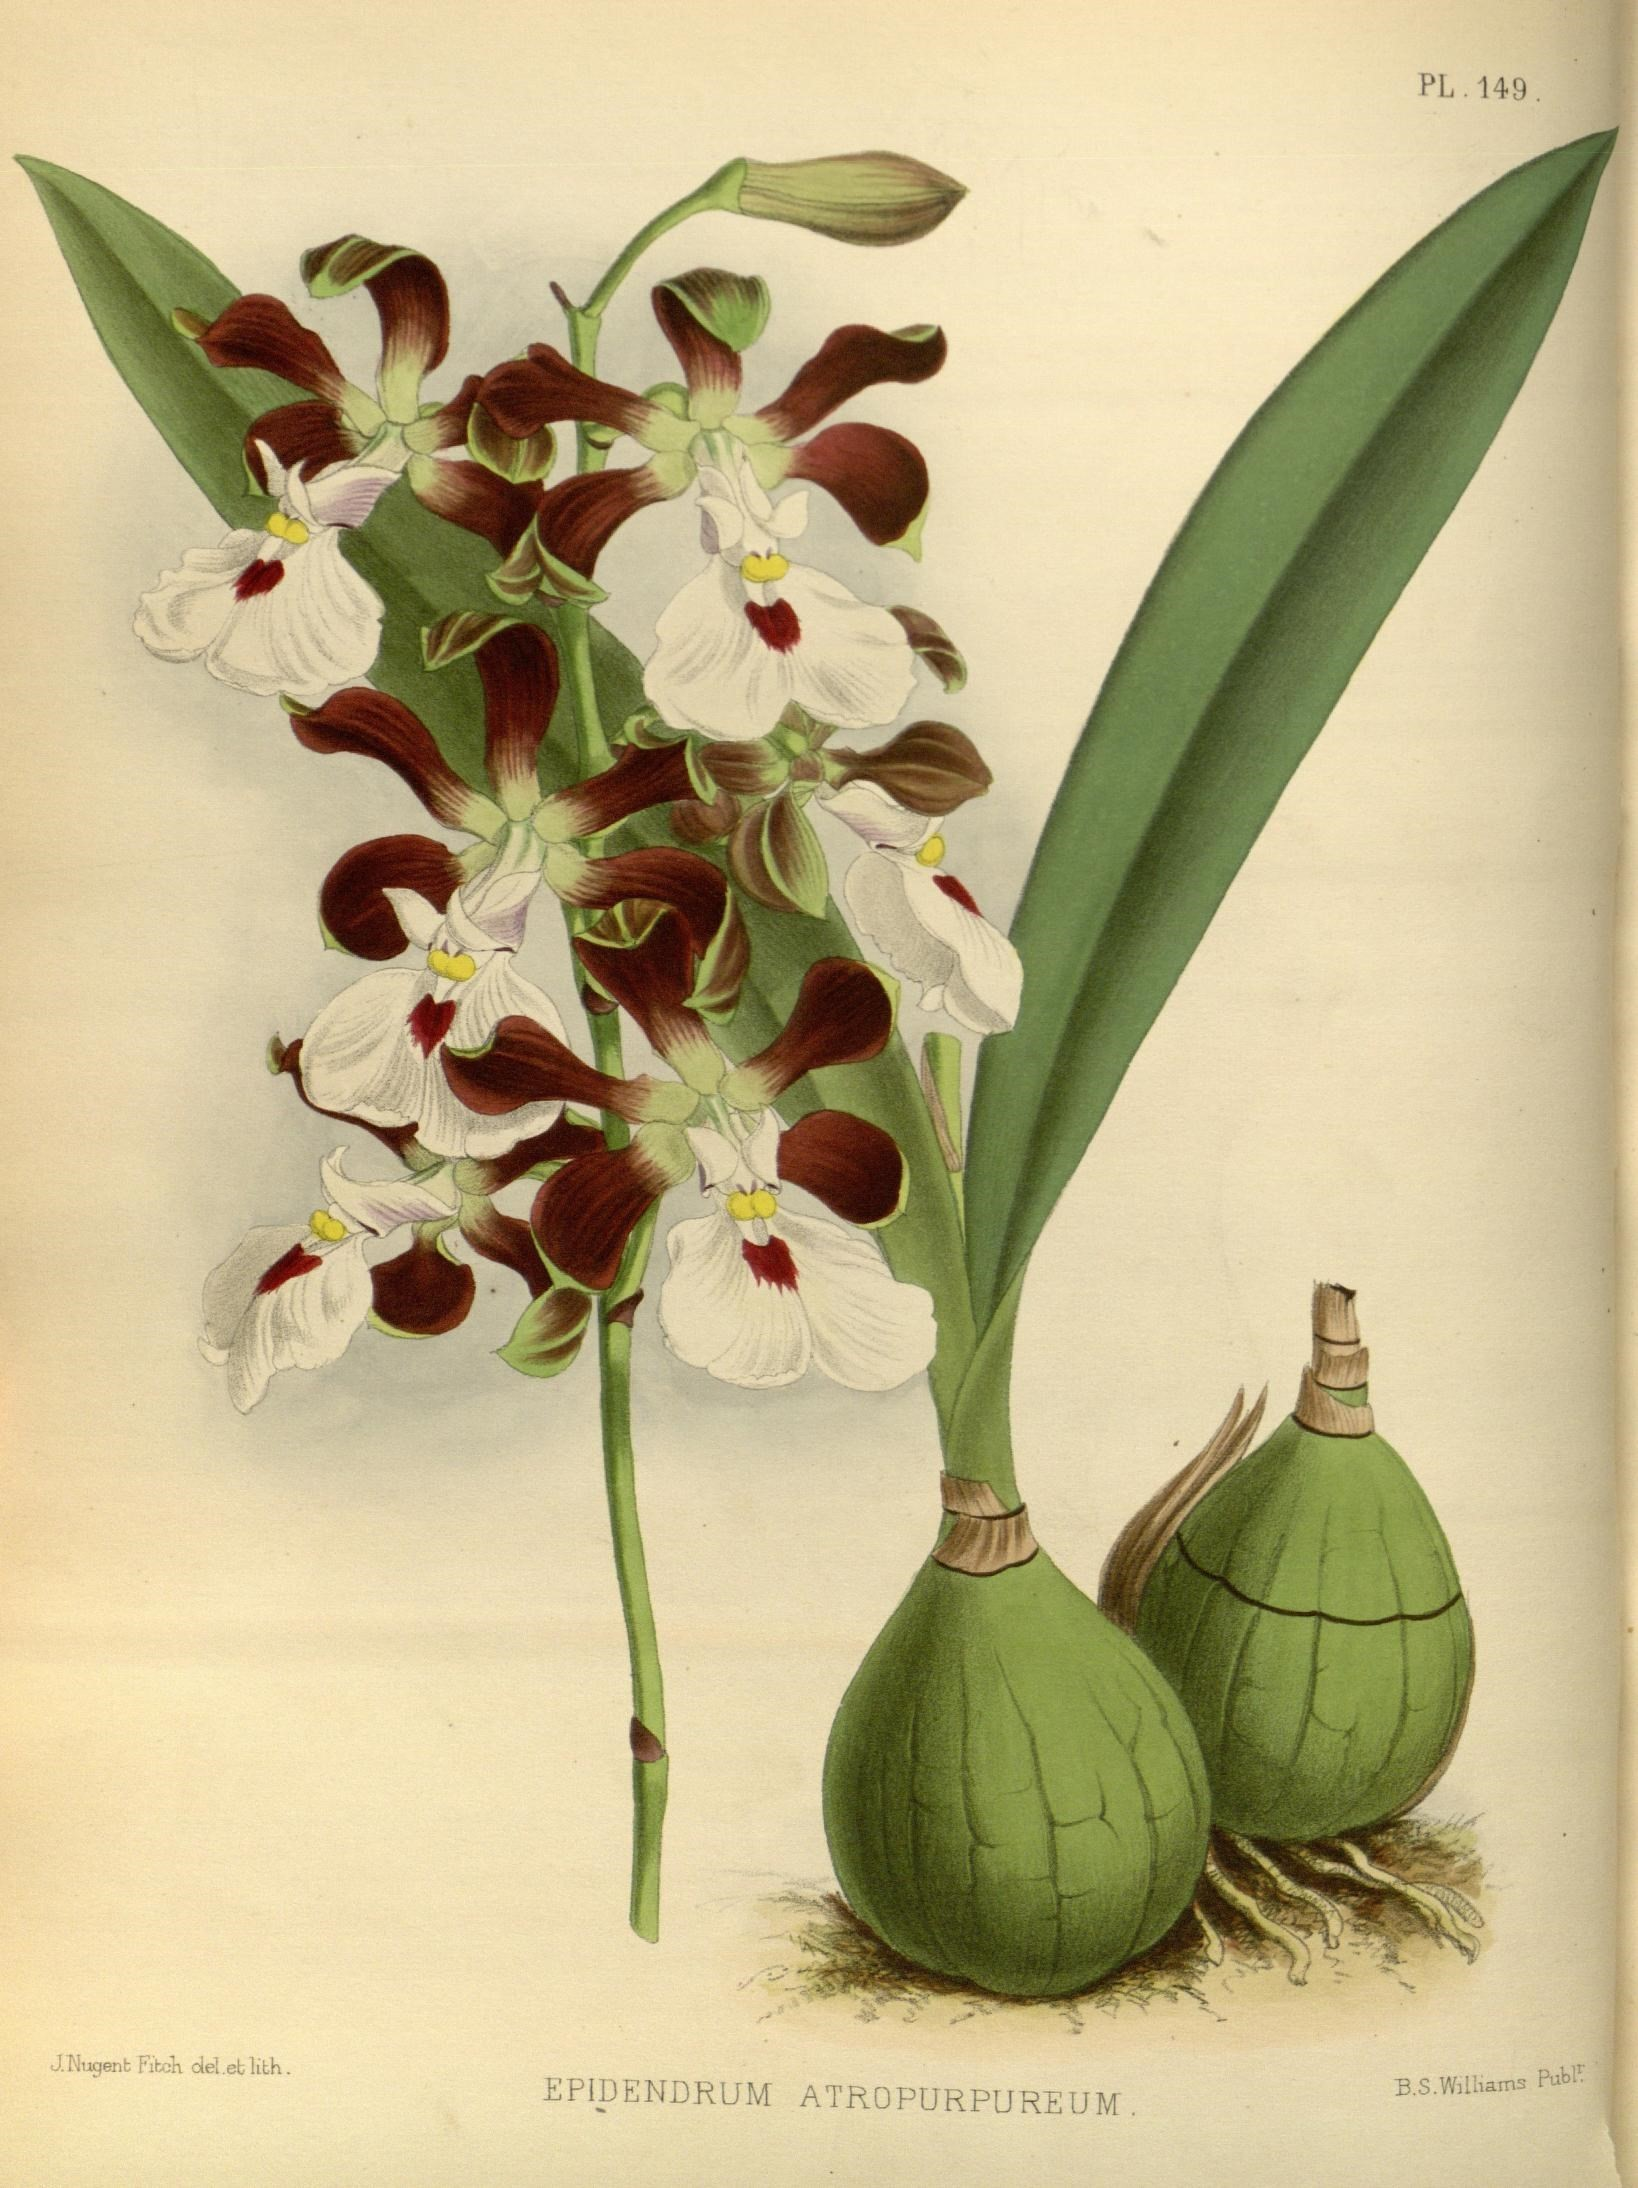 Image of Peacock orchid